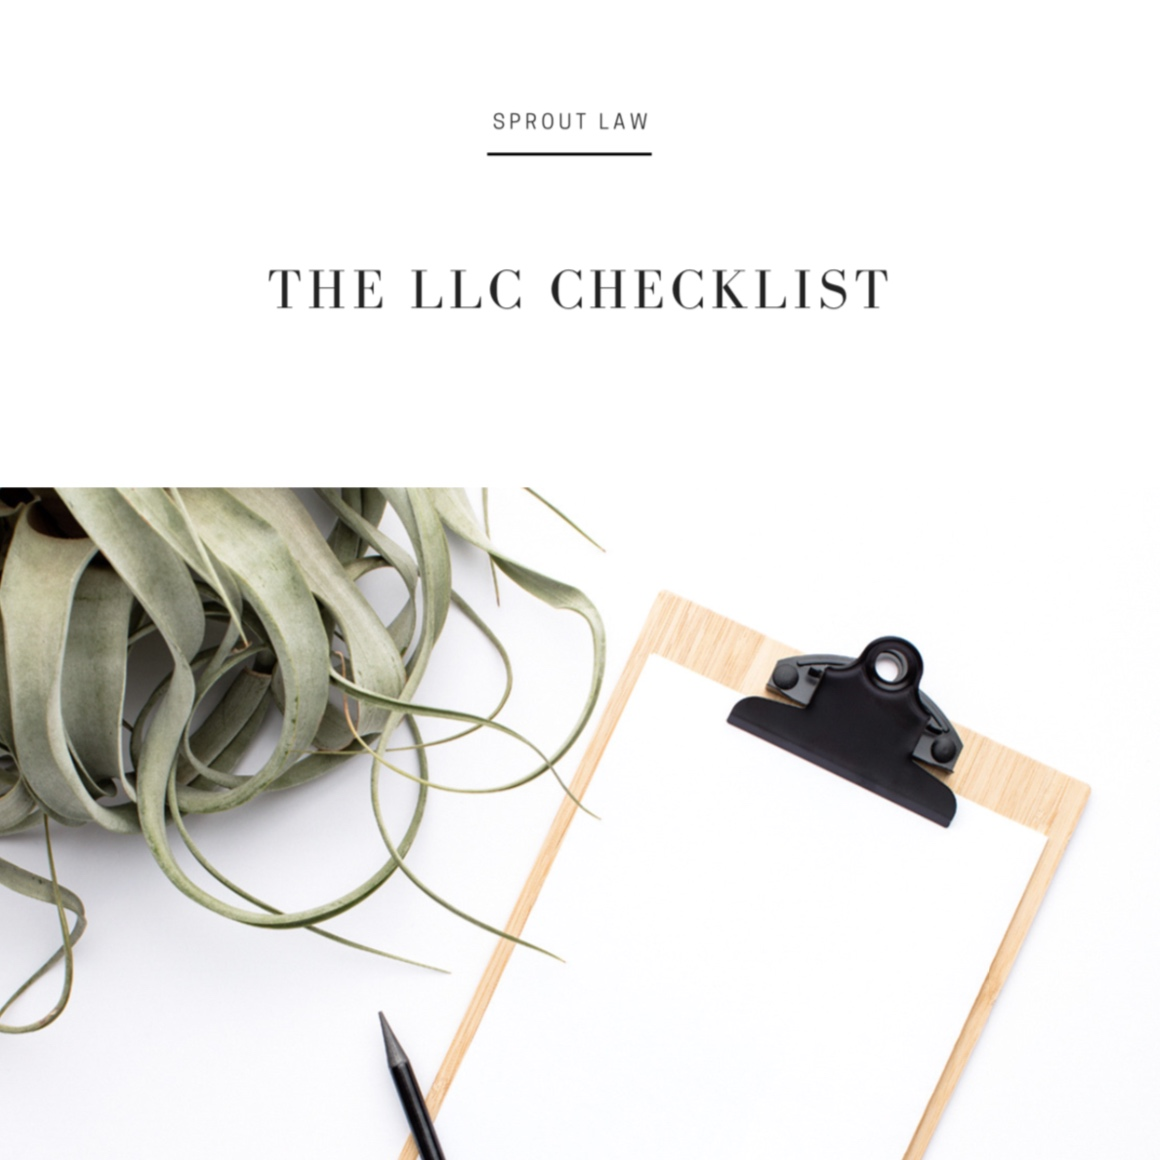 The LLC Checklist - A downloadable guide to start your company